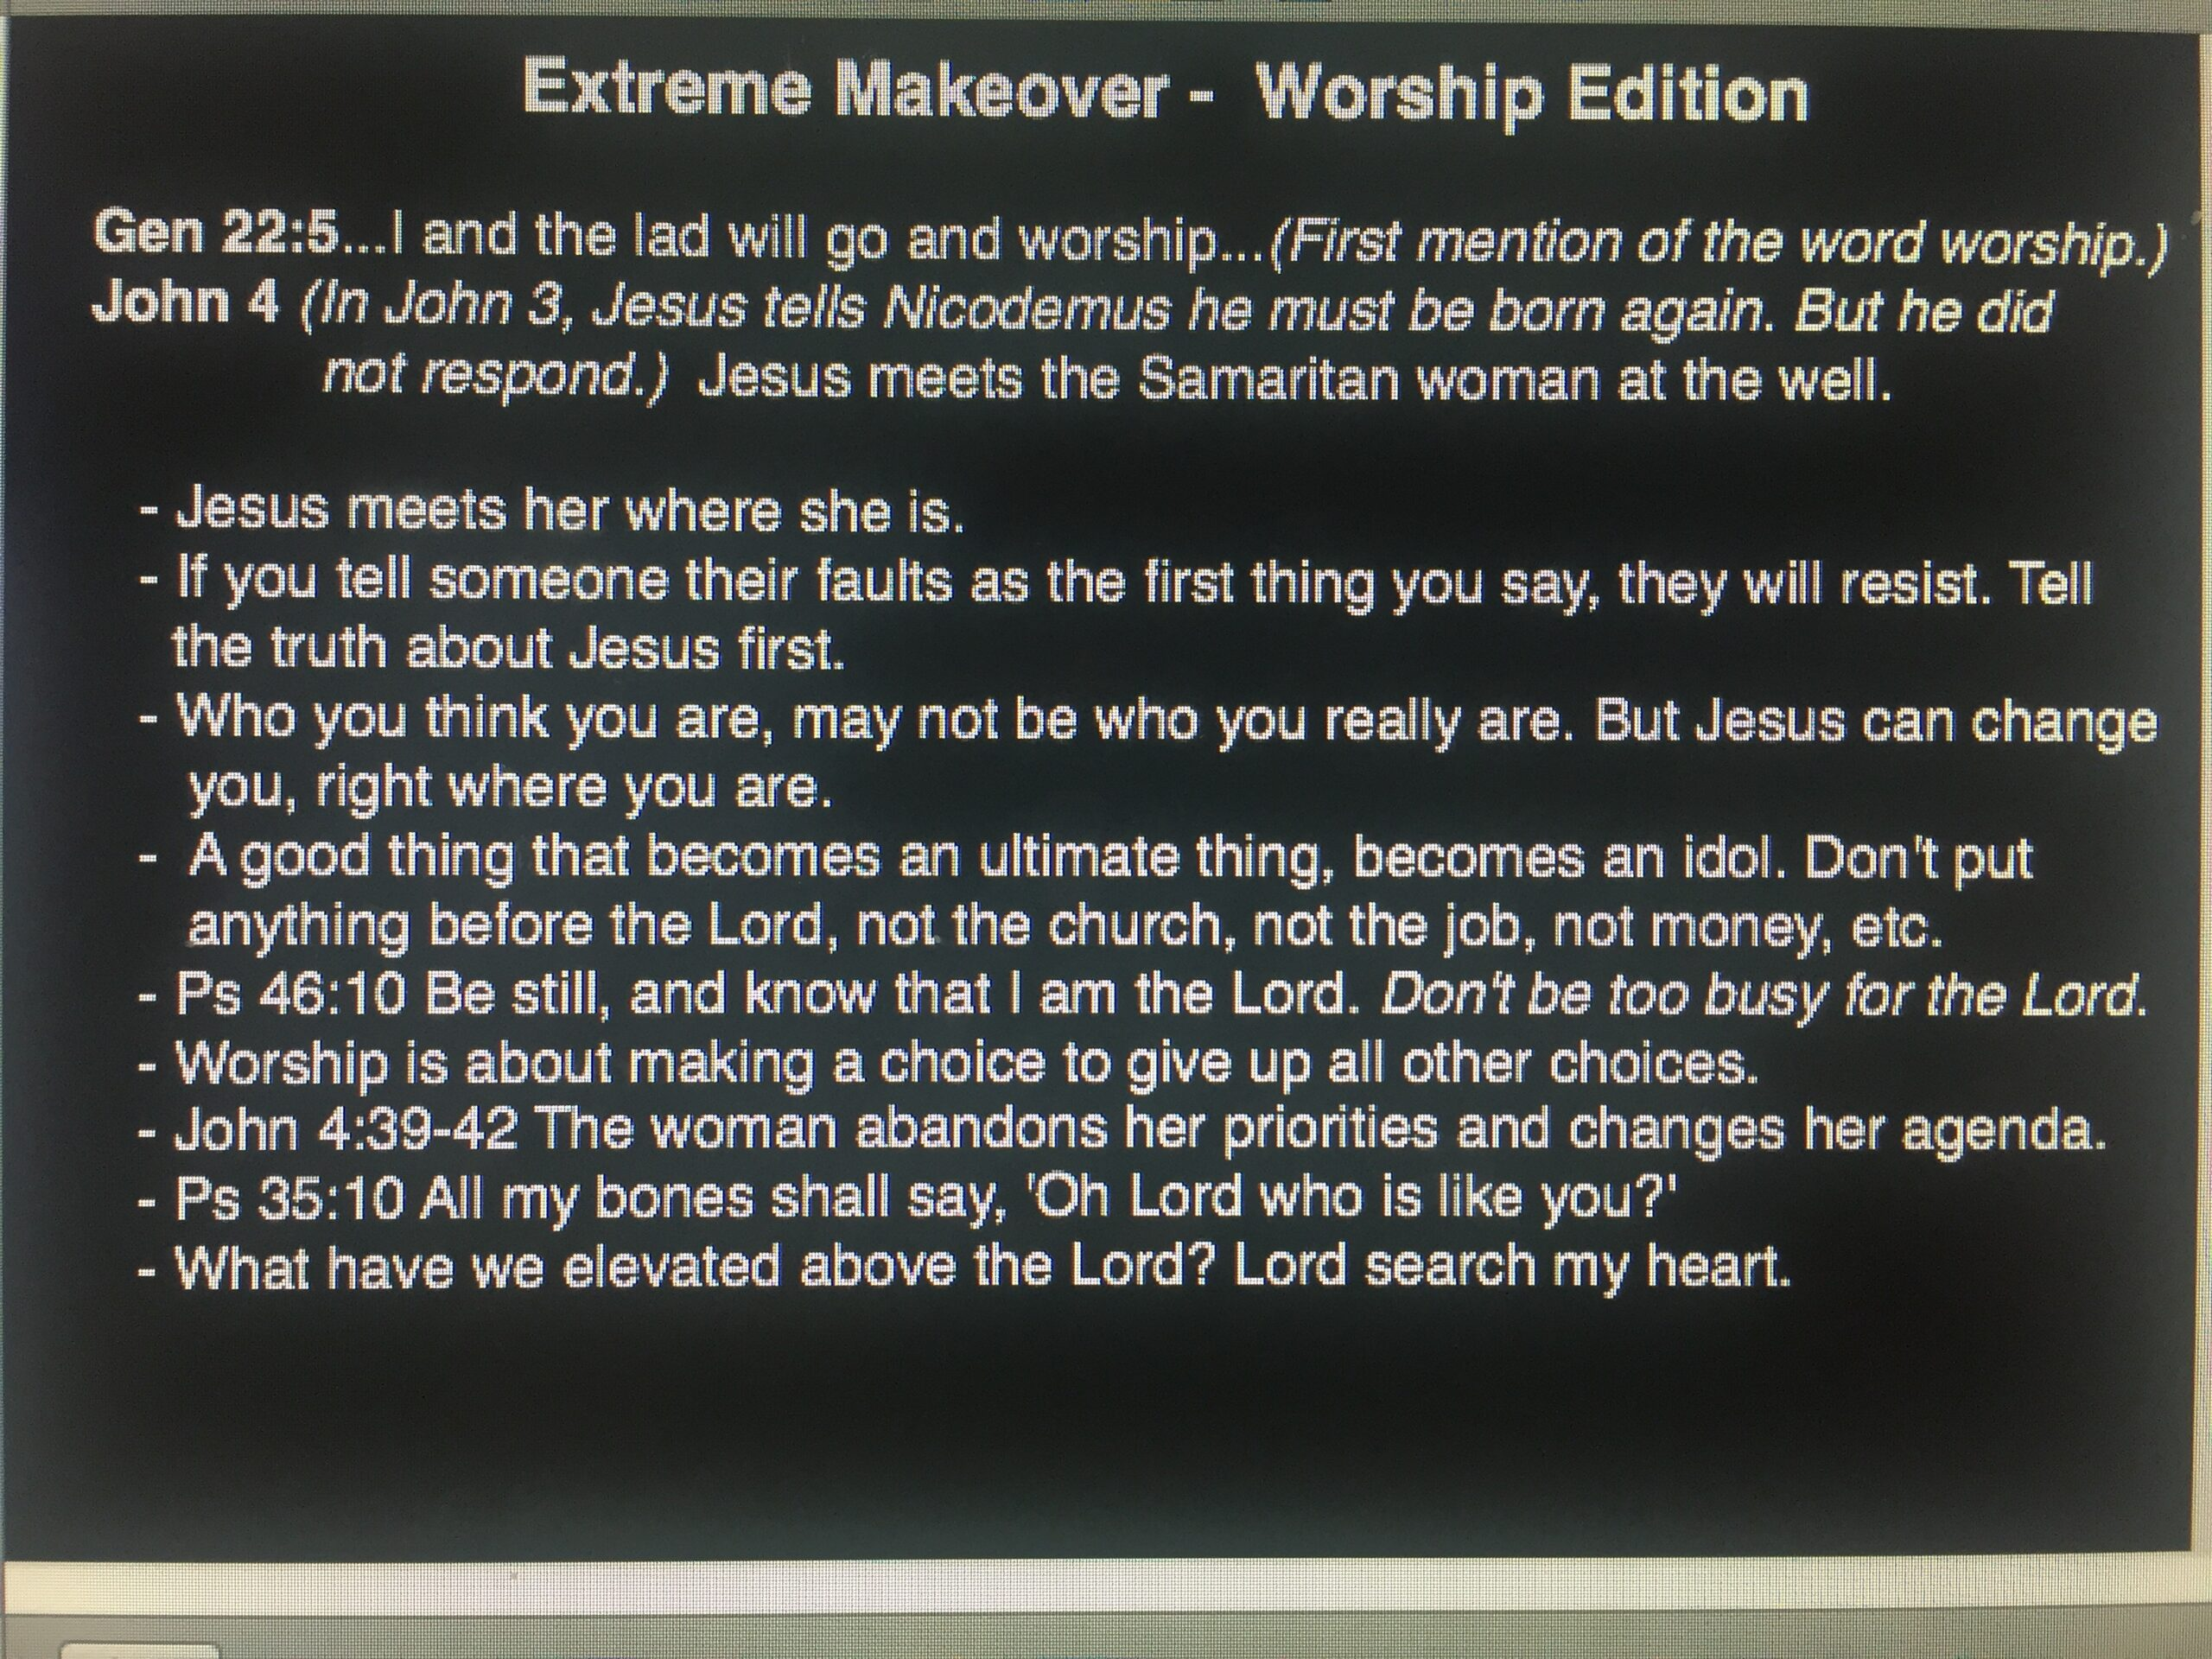 Extreme Makeover: Worship Edition - June 24, 2018